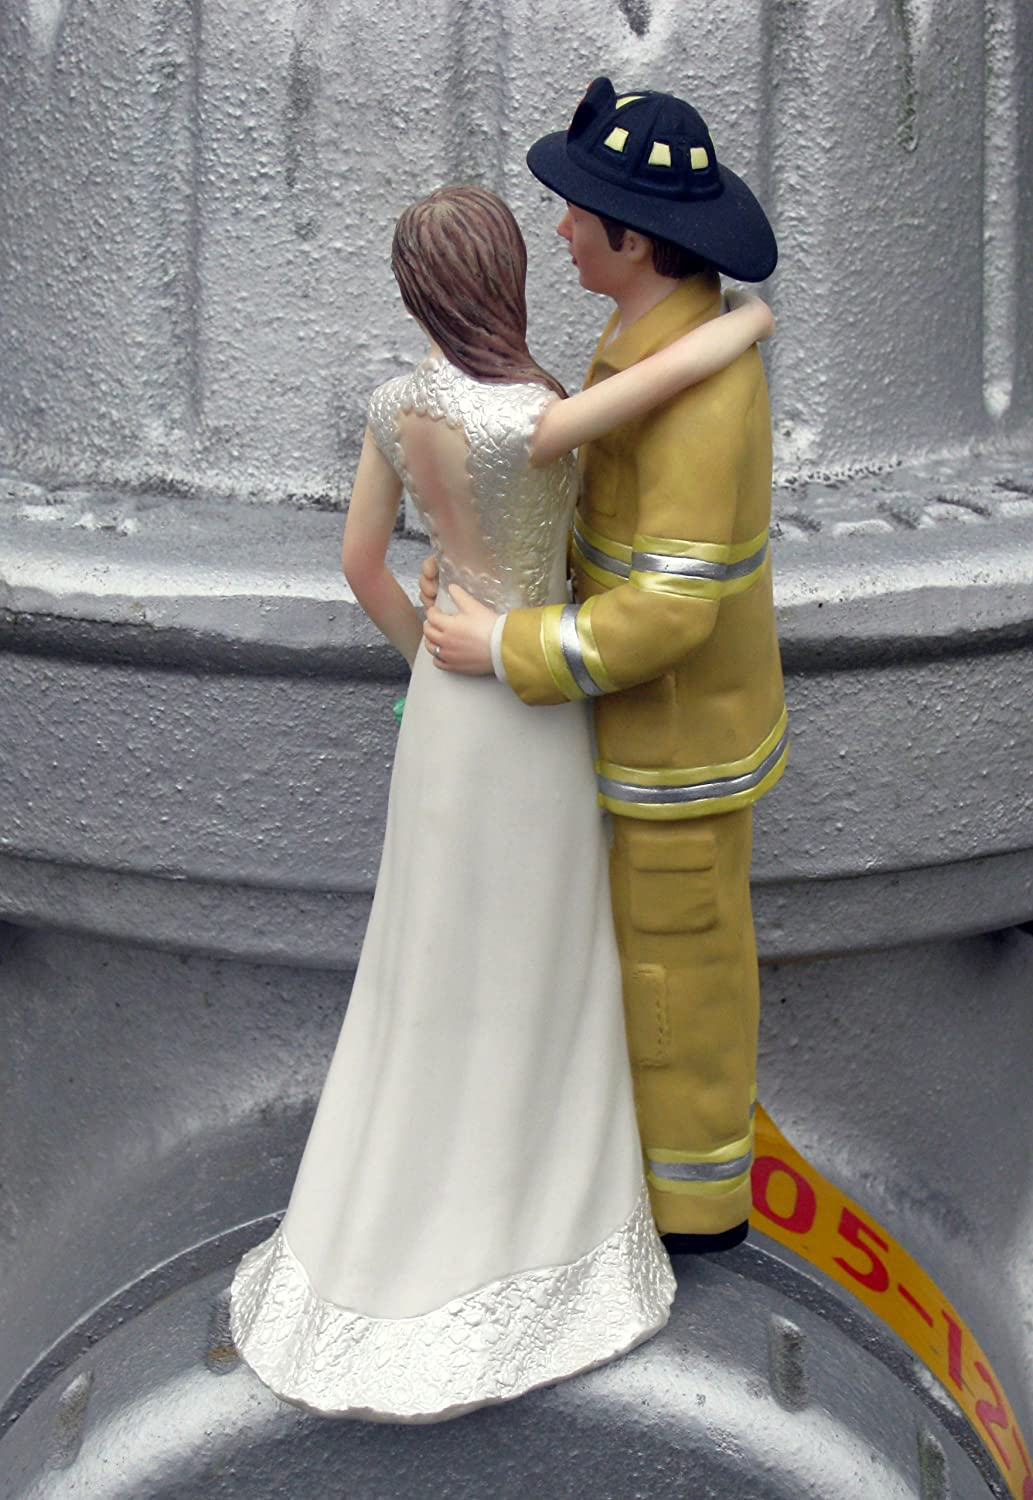 Amazon.com: Firefighter Cake Topper - Tan: Kitchen & Dining